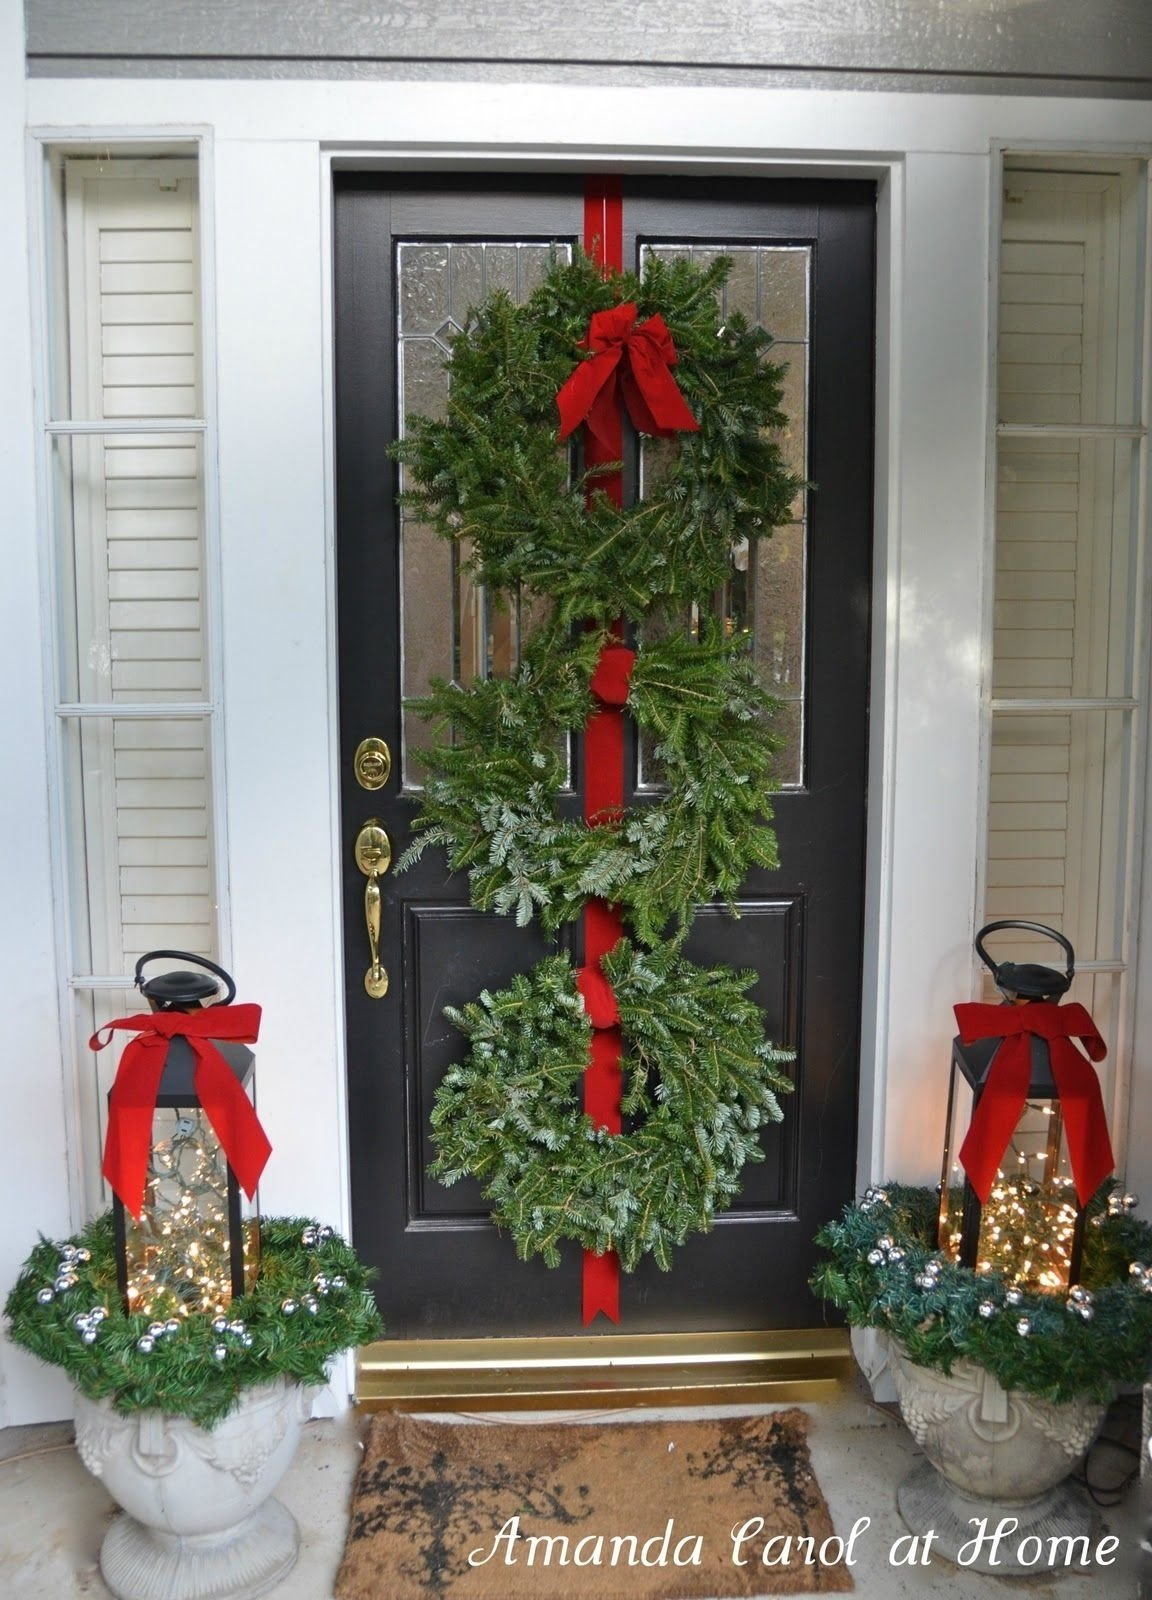 10 Lovable Christmas Front Porch Decorating Ideas front porch christmas decorating ideas source marthastewart 2 2020